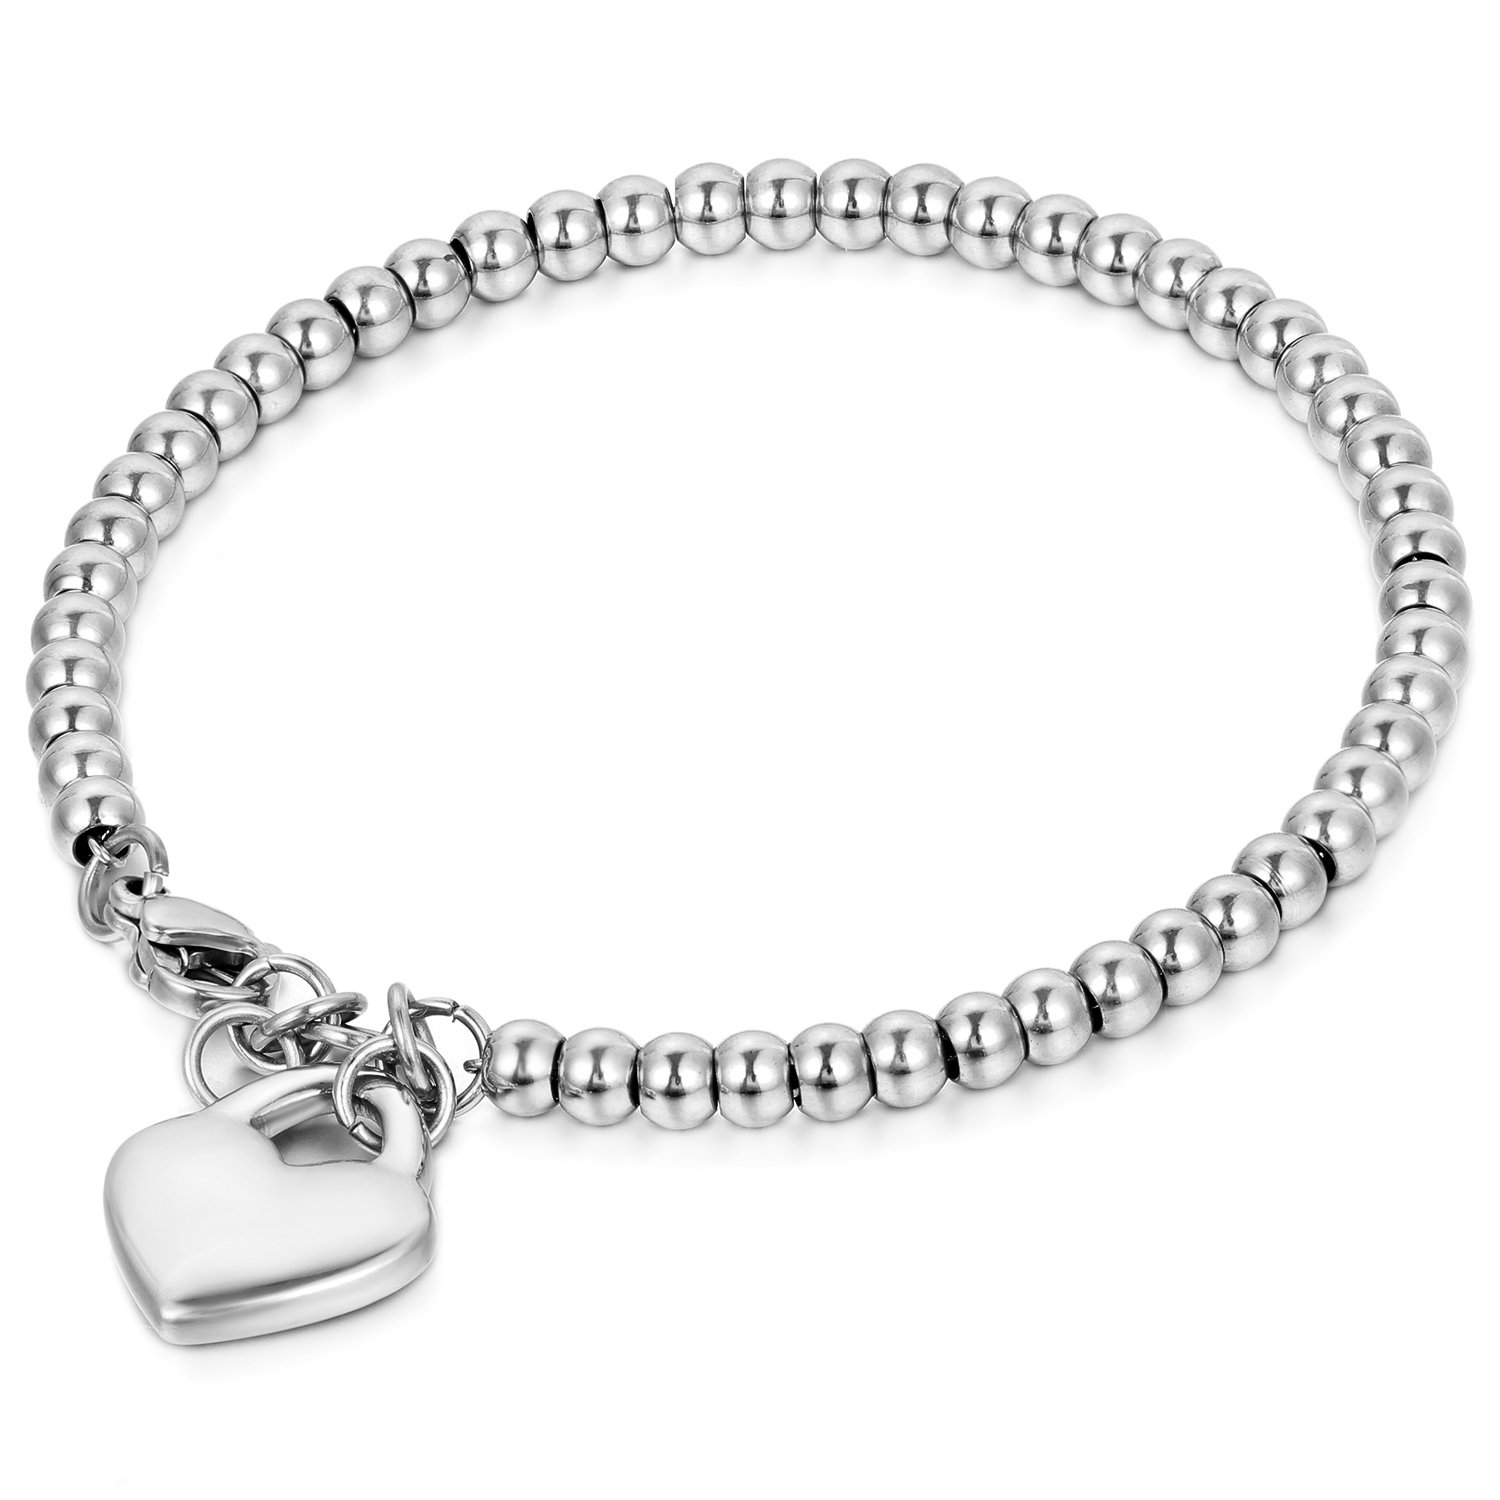 Cupimatch Womens Stainless Steel Elastic Love Heart Charm Beaded Ball Chain Bracelet Mother's Day Gift C003024